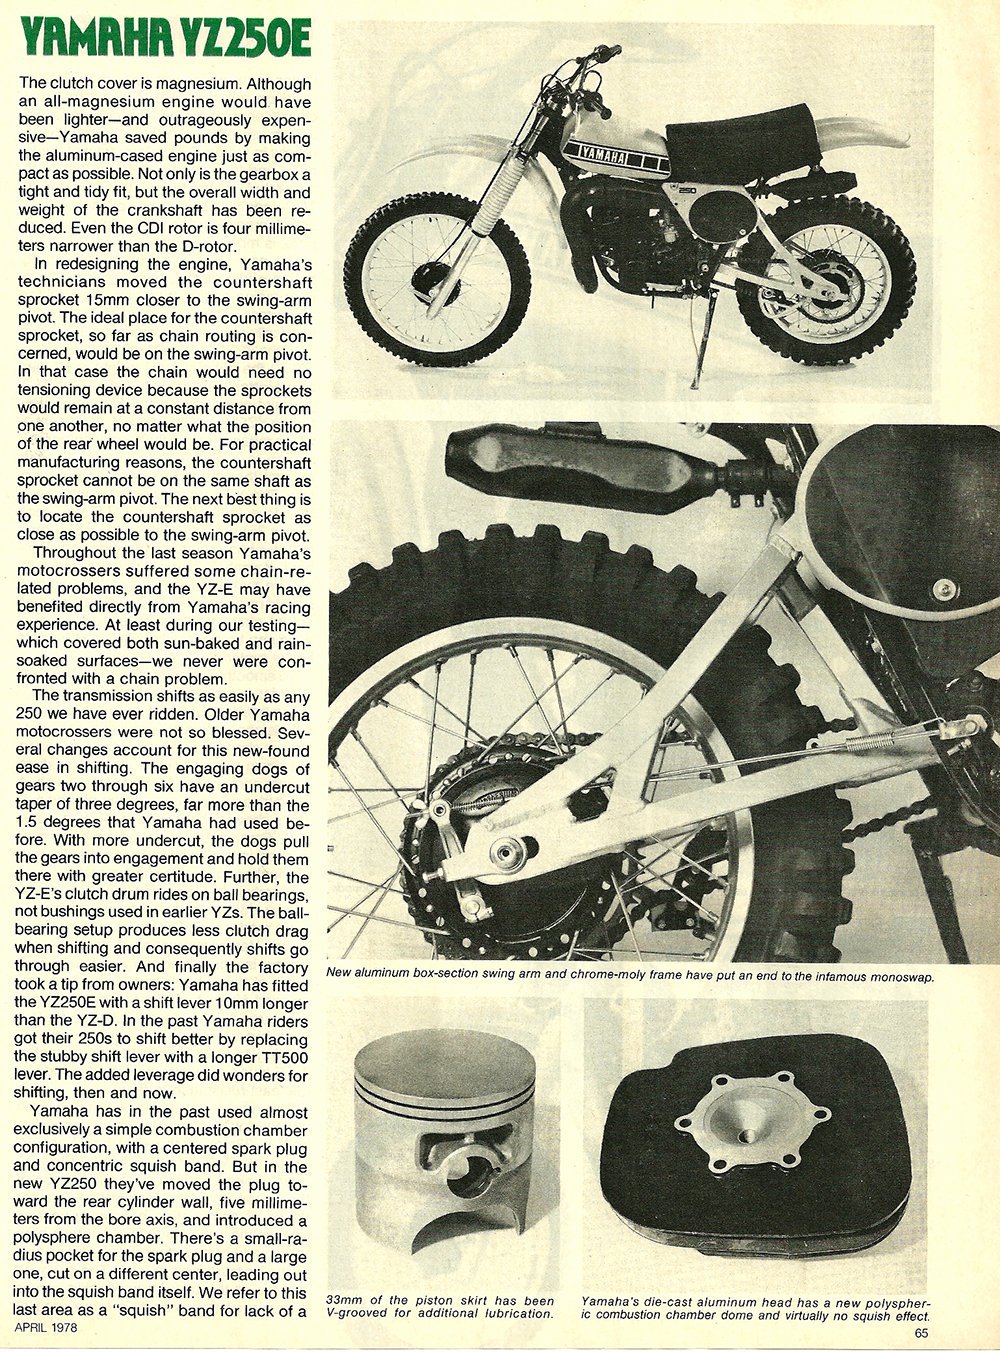 1978 Yamaha YZ250E road test 4.jpg